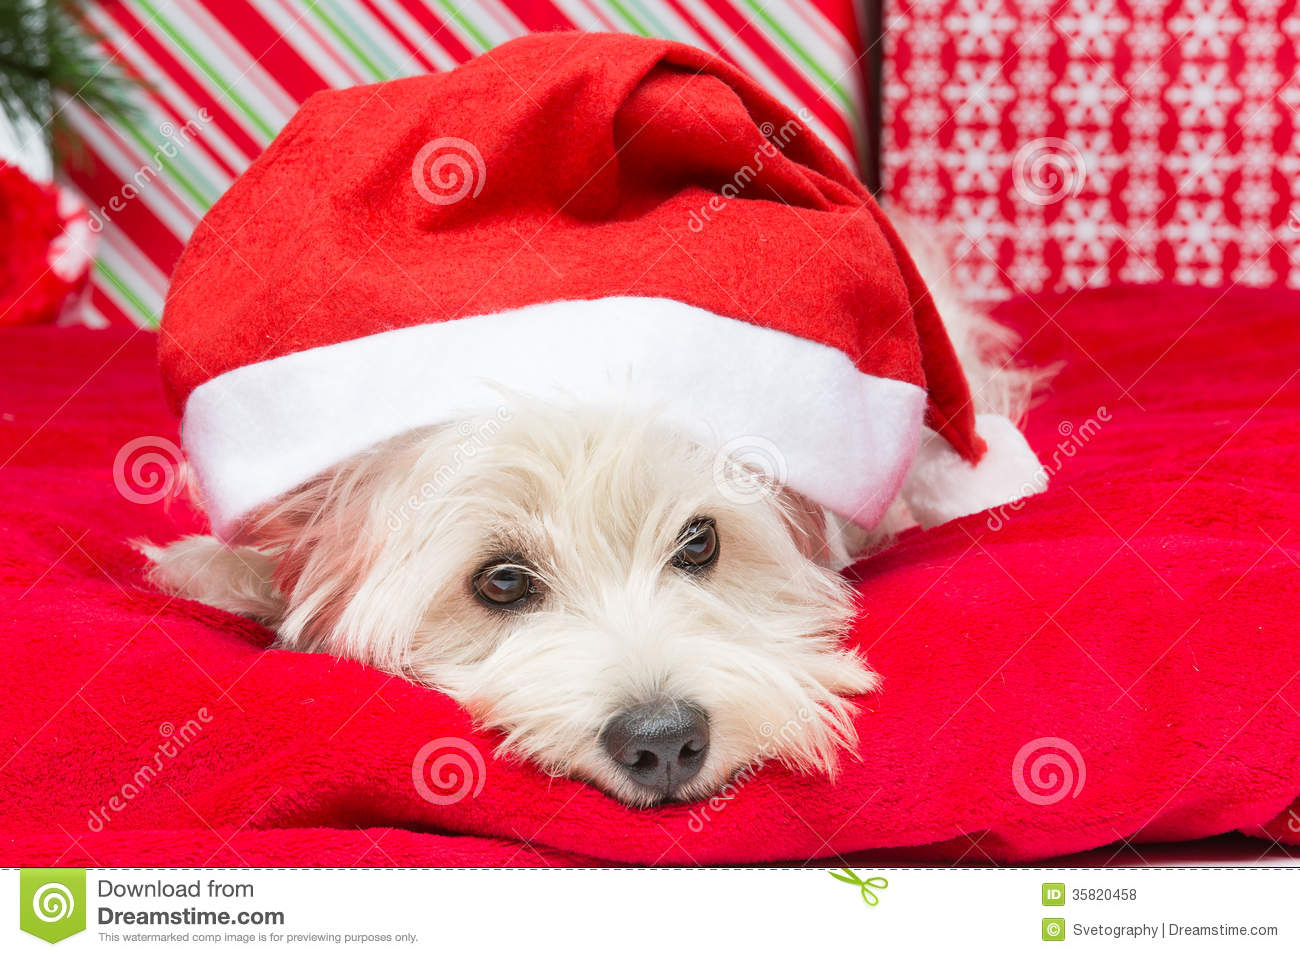 Westie in christmas hat stock photo. Image of funny, cover - 35820458